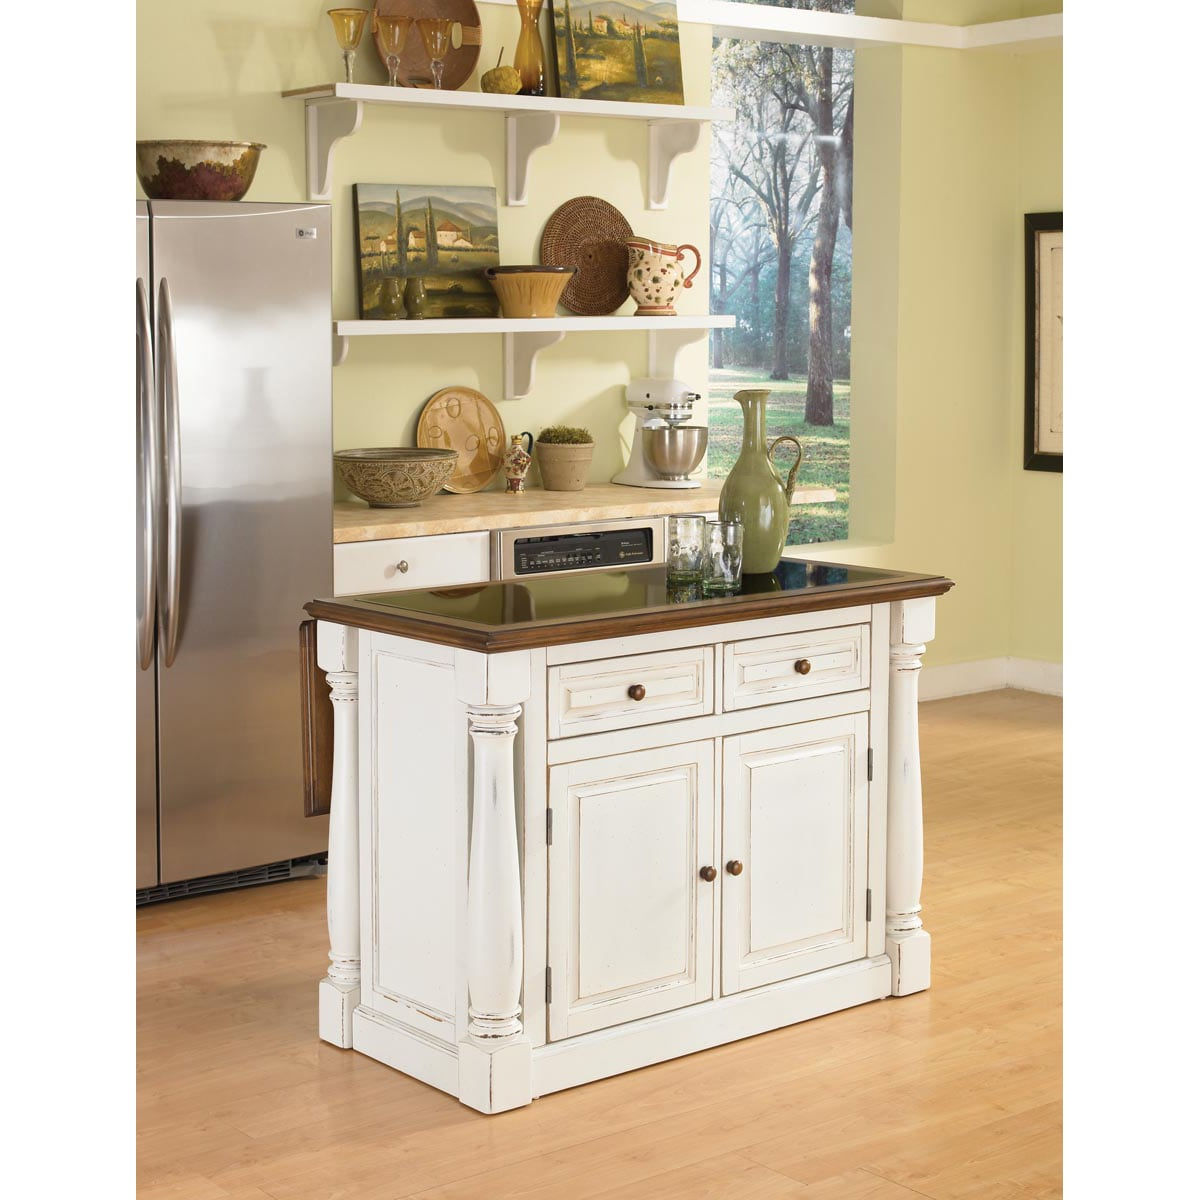 kitchen island discount cool knives privacy policy